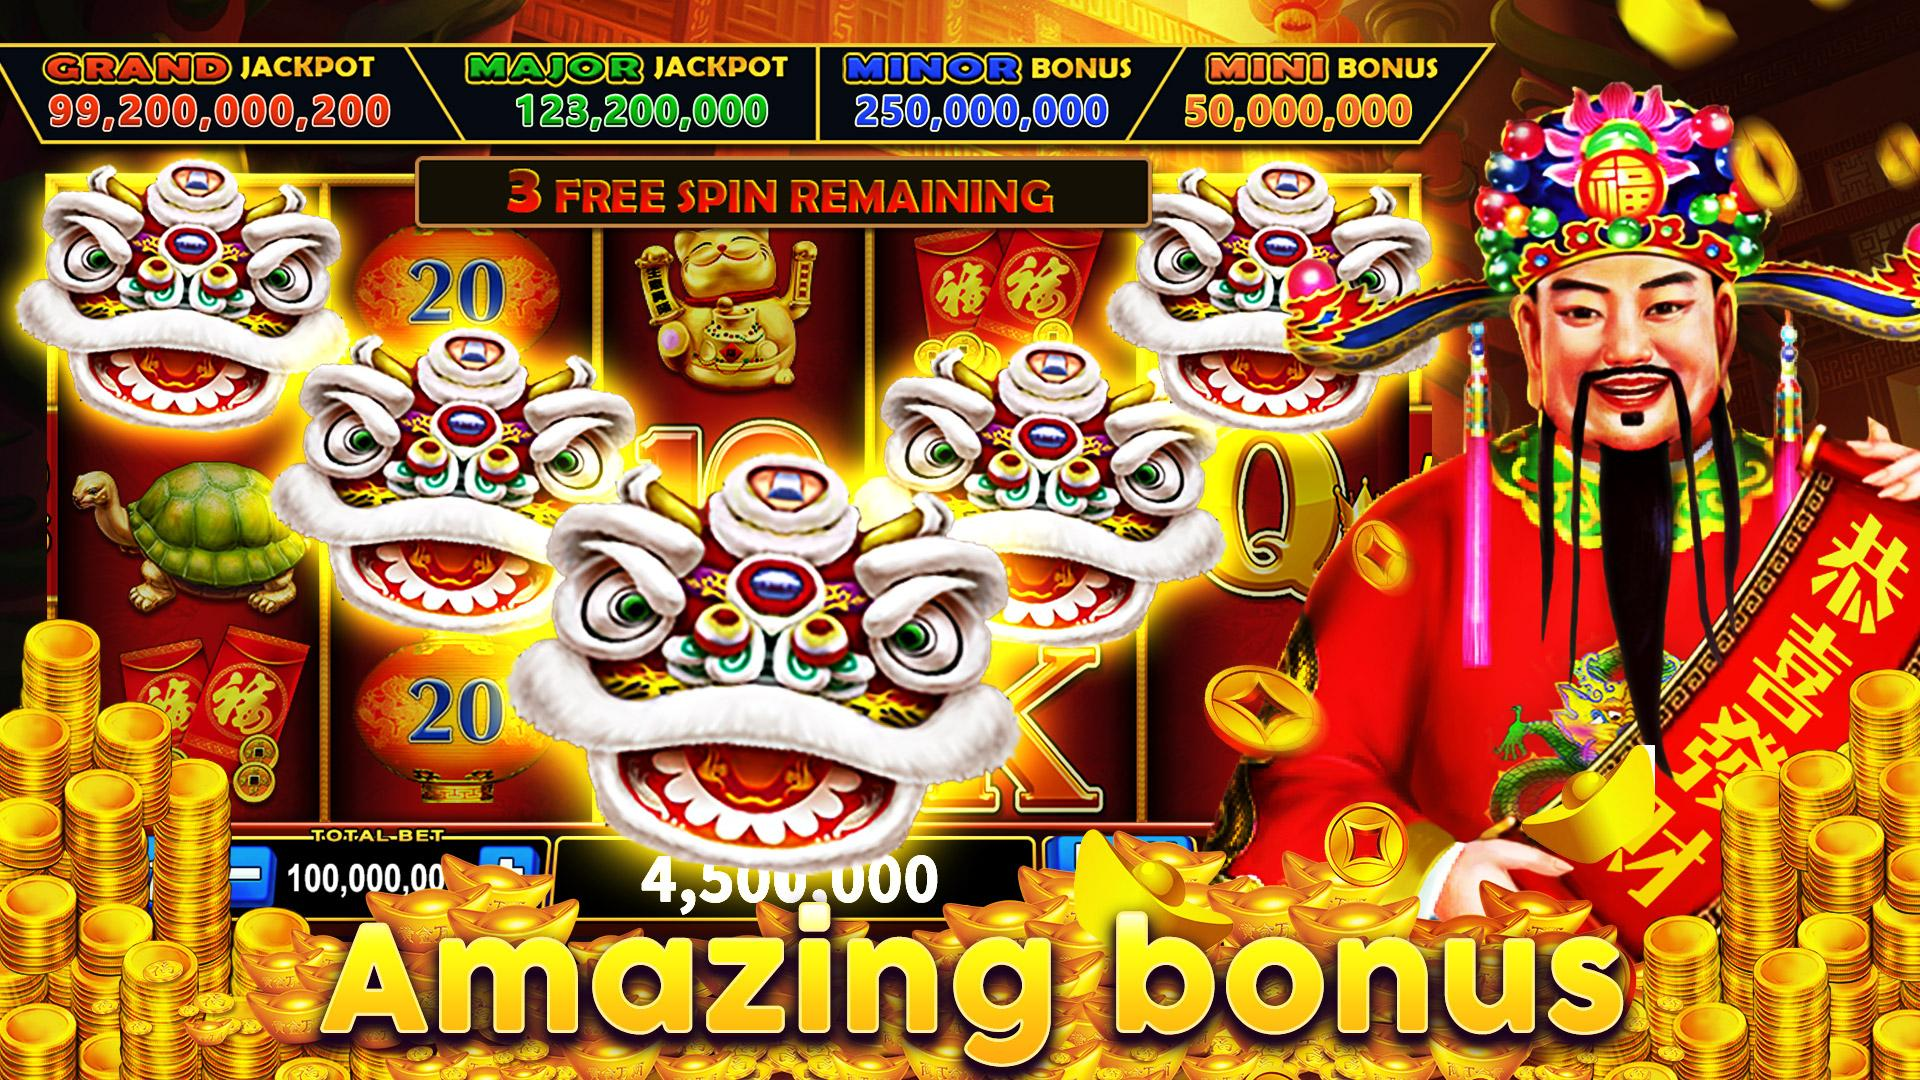 Vegas Casino Slots 2020 - 2,000,000 Free Coins 1.0.34 Screenshot 12